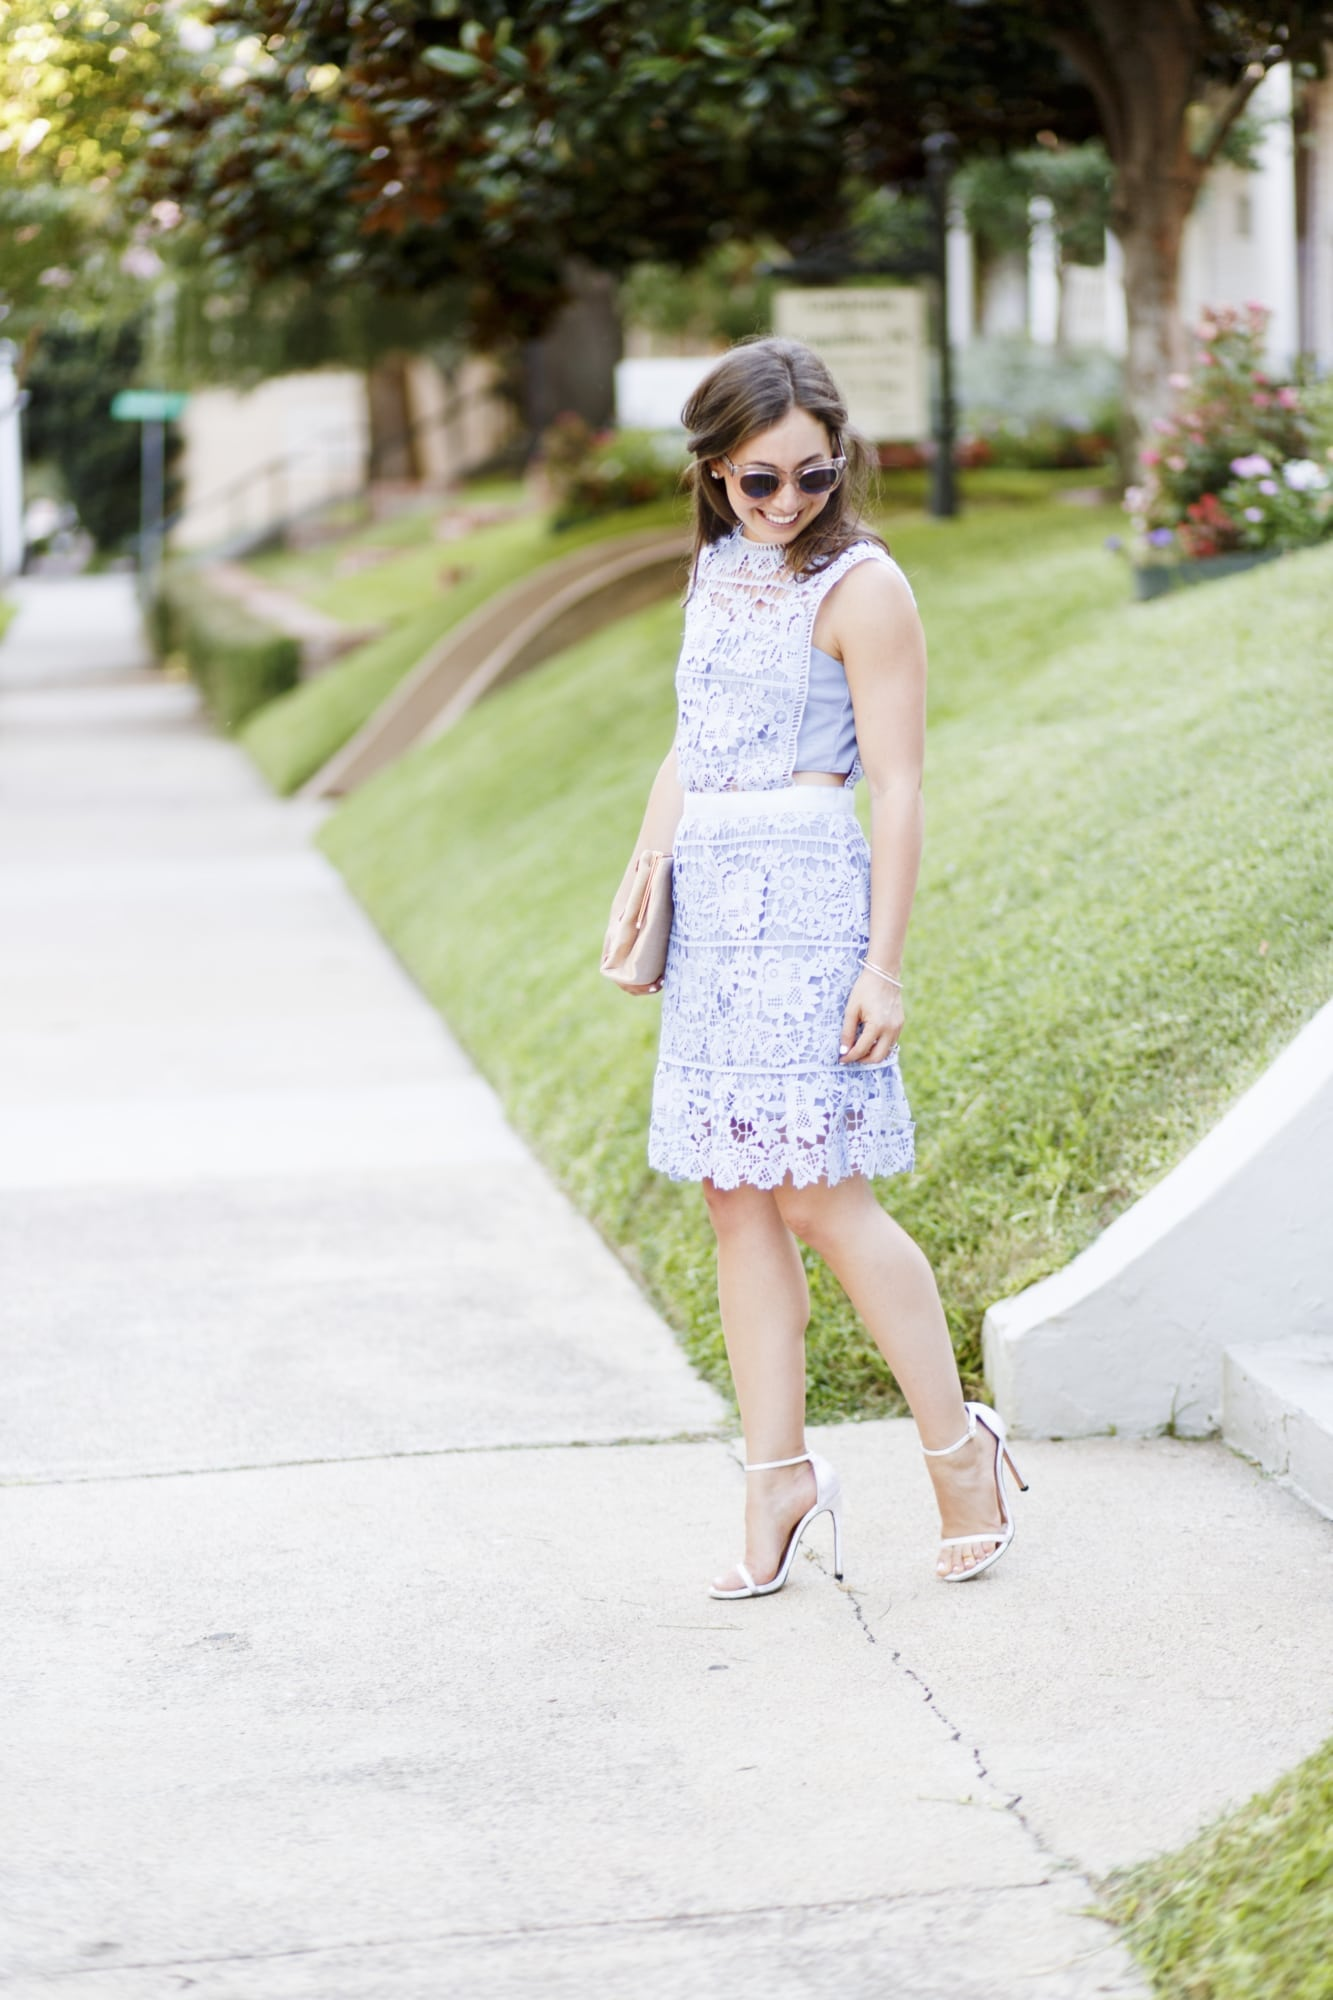 Lace Cutout Dress and Stuart Weitzman Nudist Heels